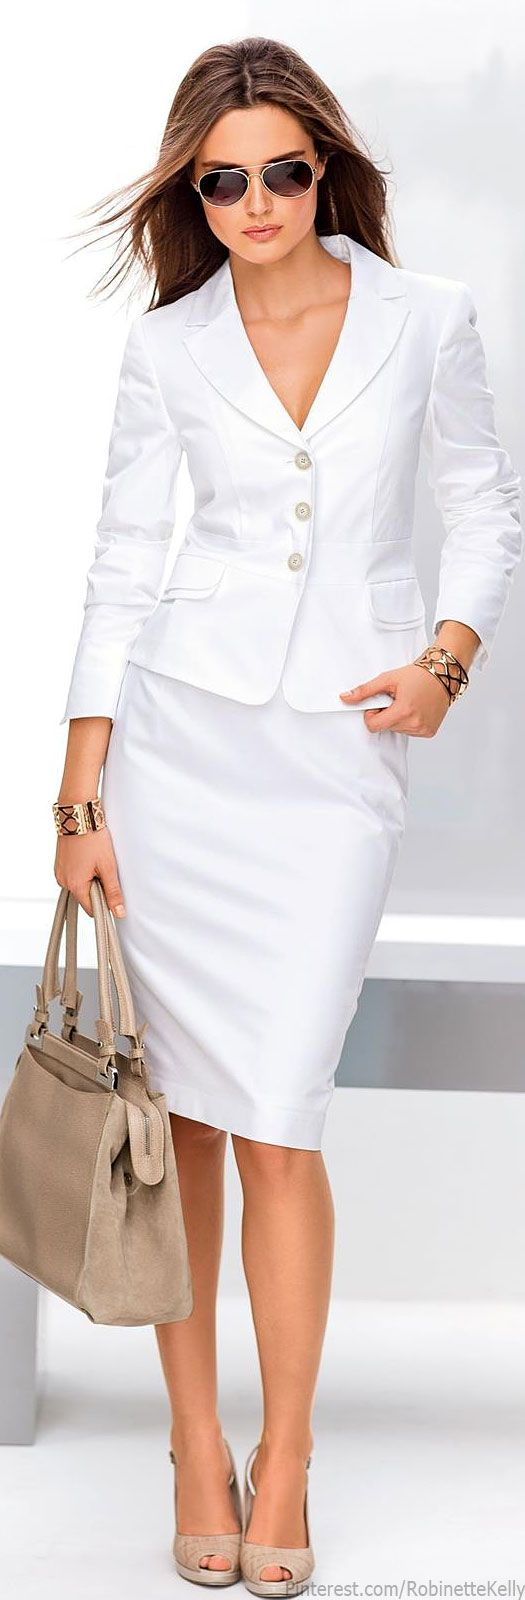 A crisp white skirt suit looks professional and fashionable. Fashion equality means that anyone can look this good.